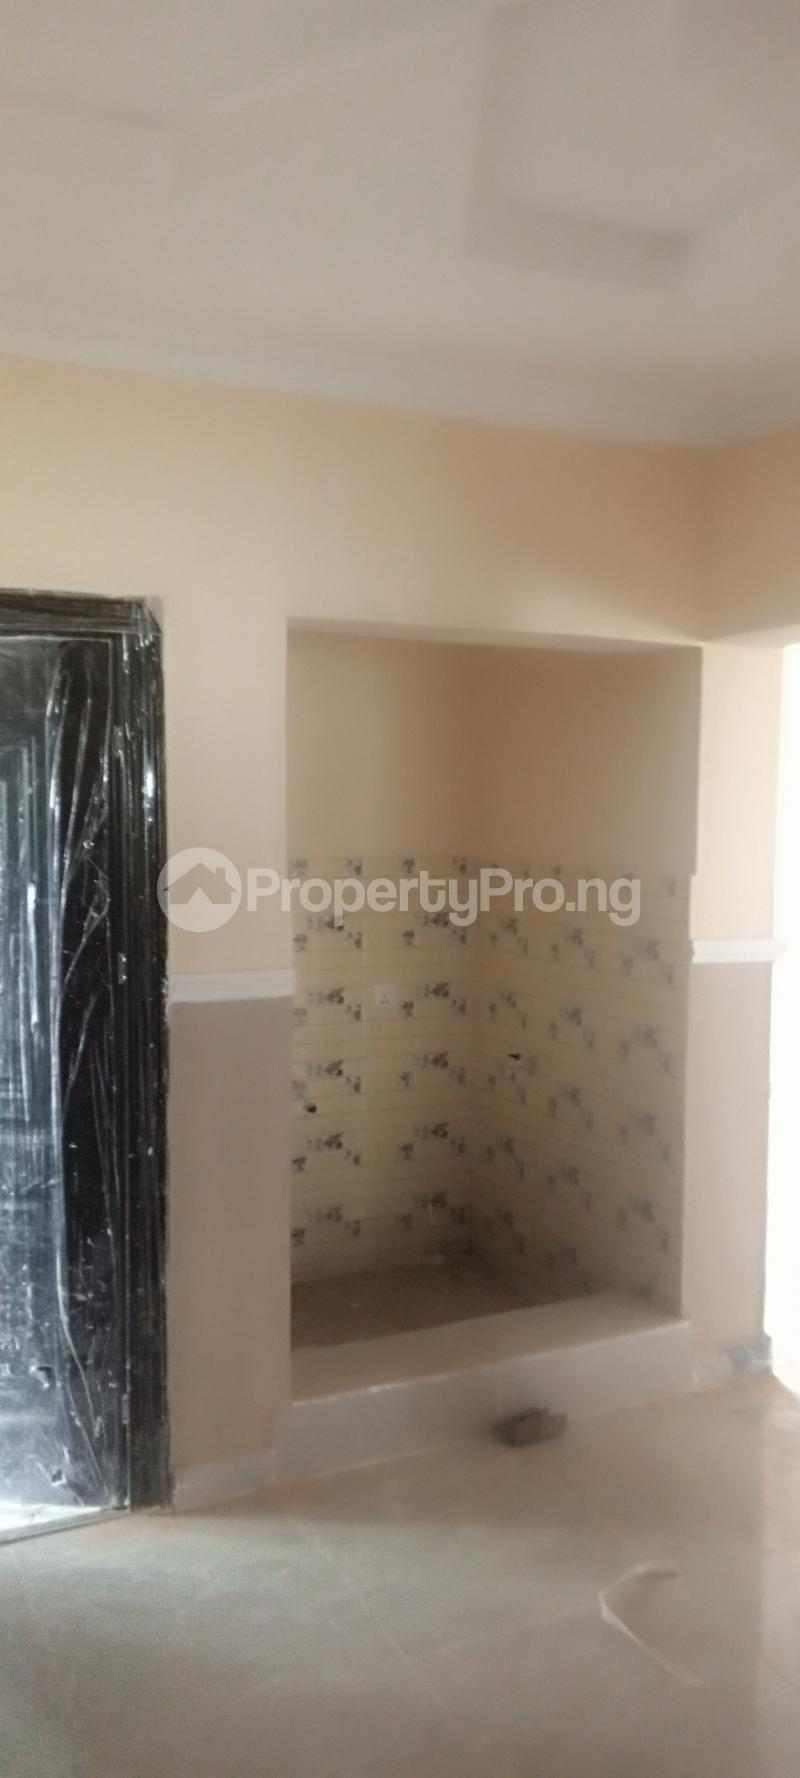 3 bedroom Flat / Apartment for rent A close Oke-Ira Ogba Lagos - 8